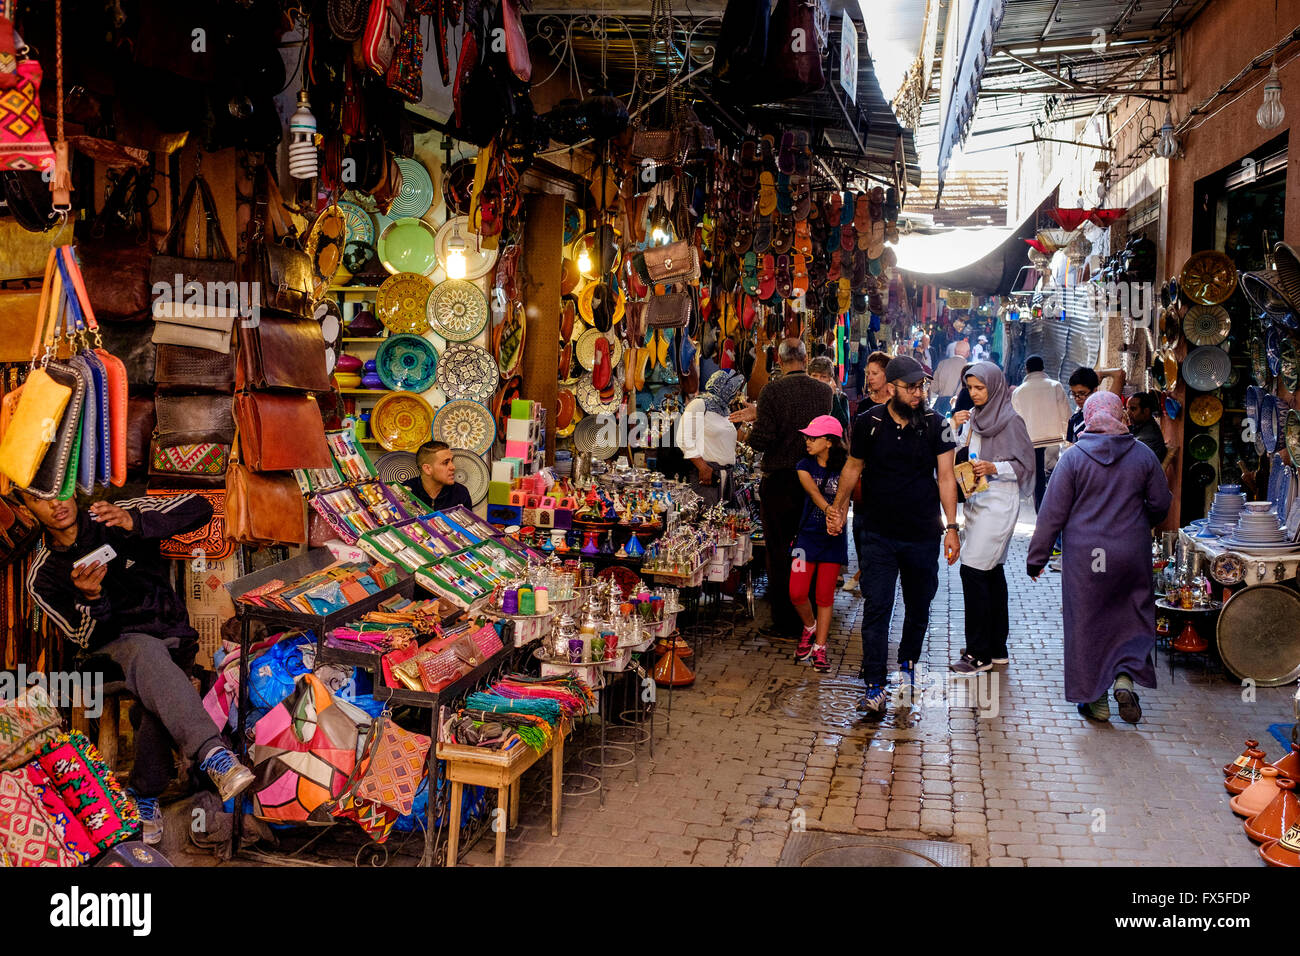 Street scene in a souk in the medina in Marrakech, Morocco, North Africa - Stock Image